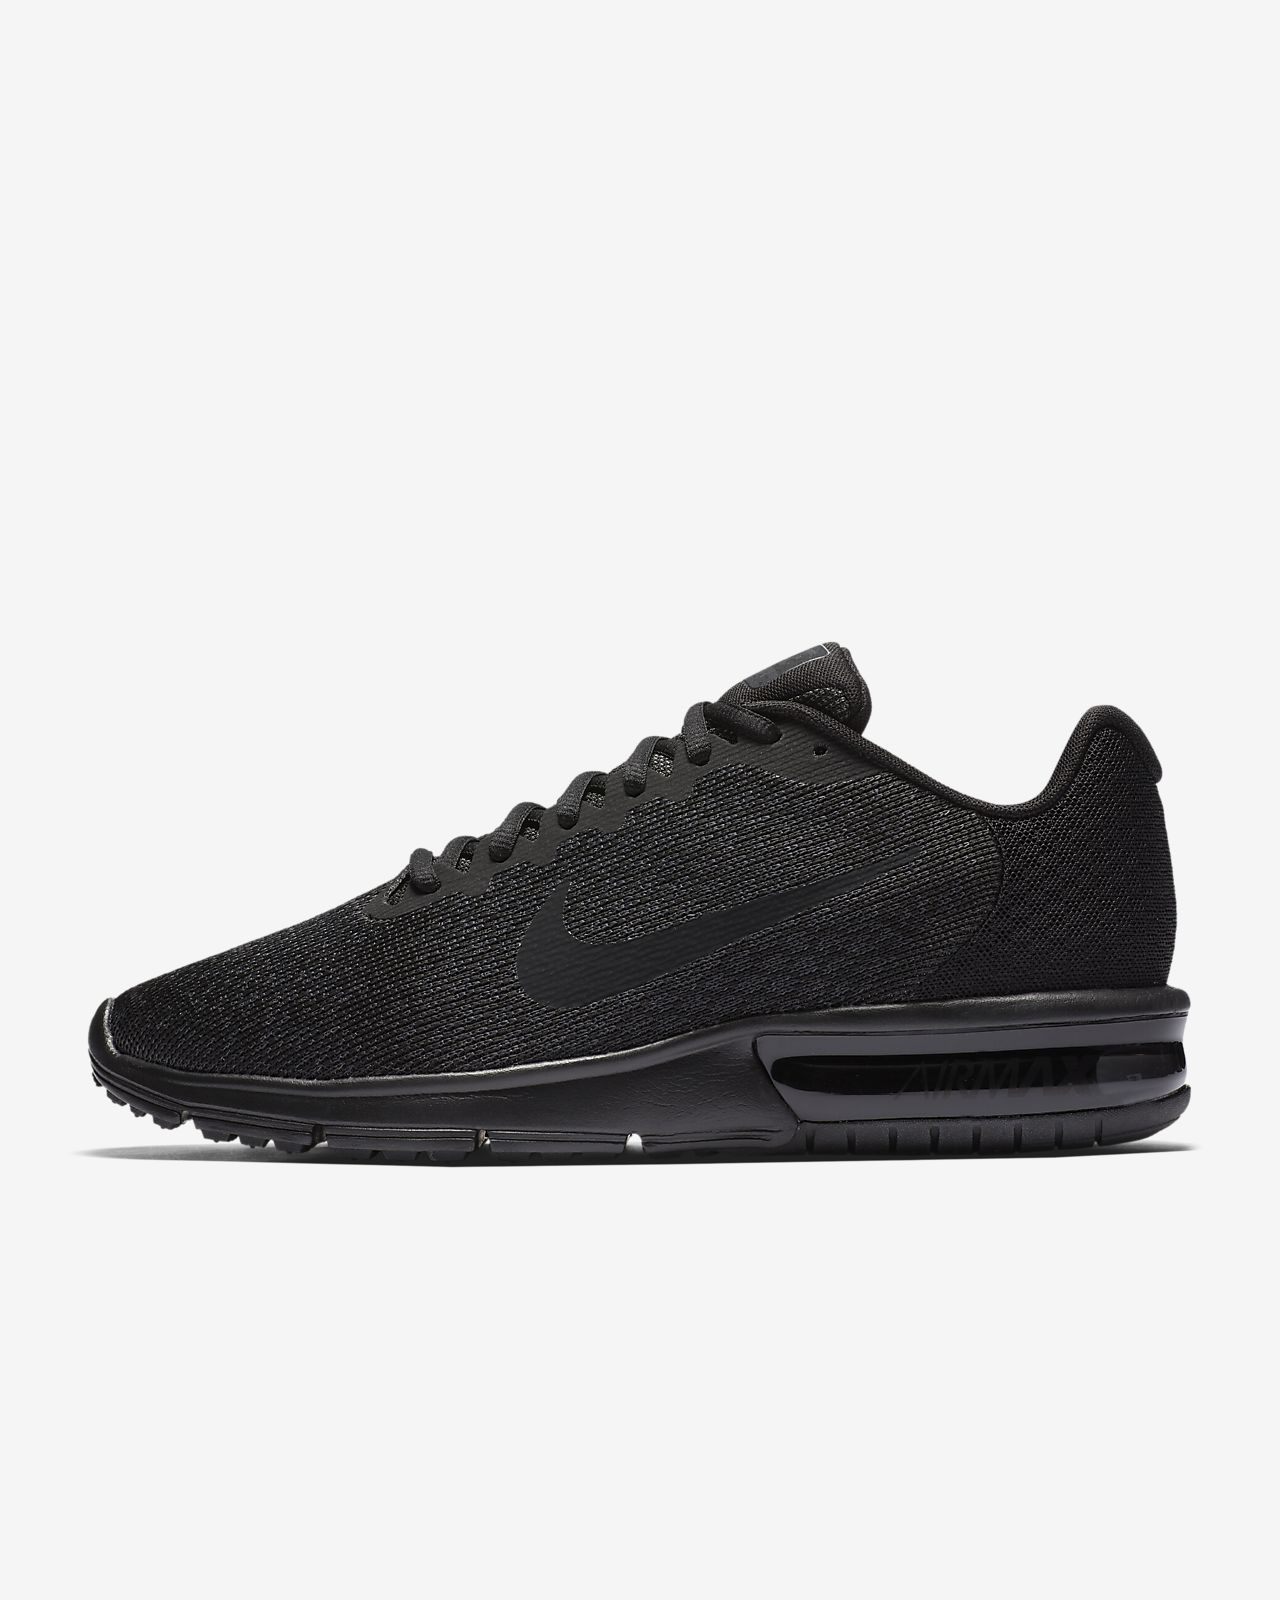 New Nike air Max sequent 2.